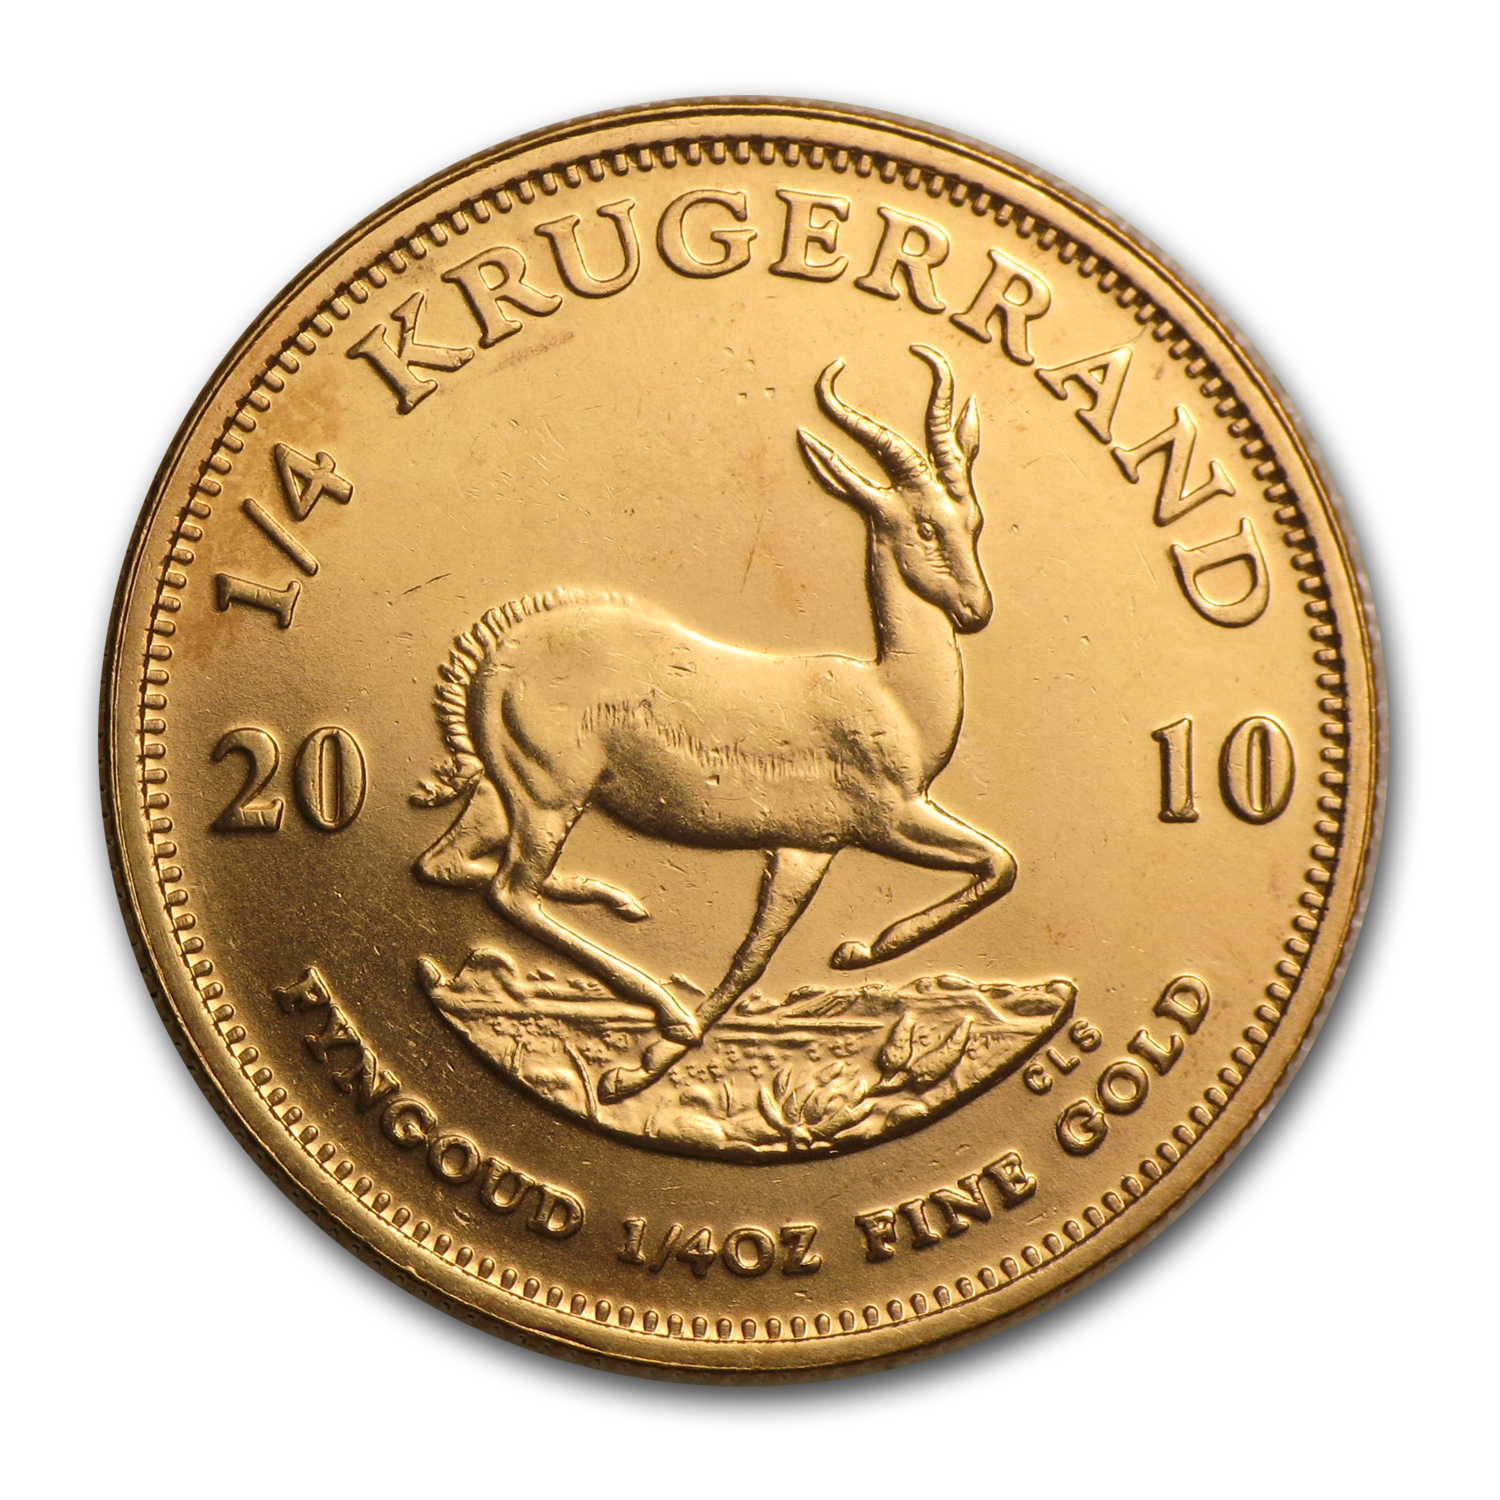 2010 South Africa 1/4 oz Gold Krugerrand